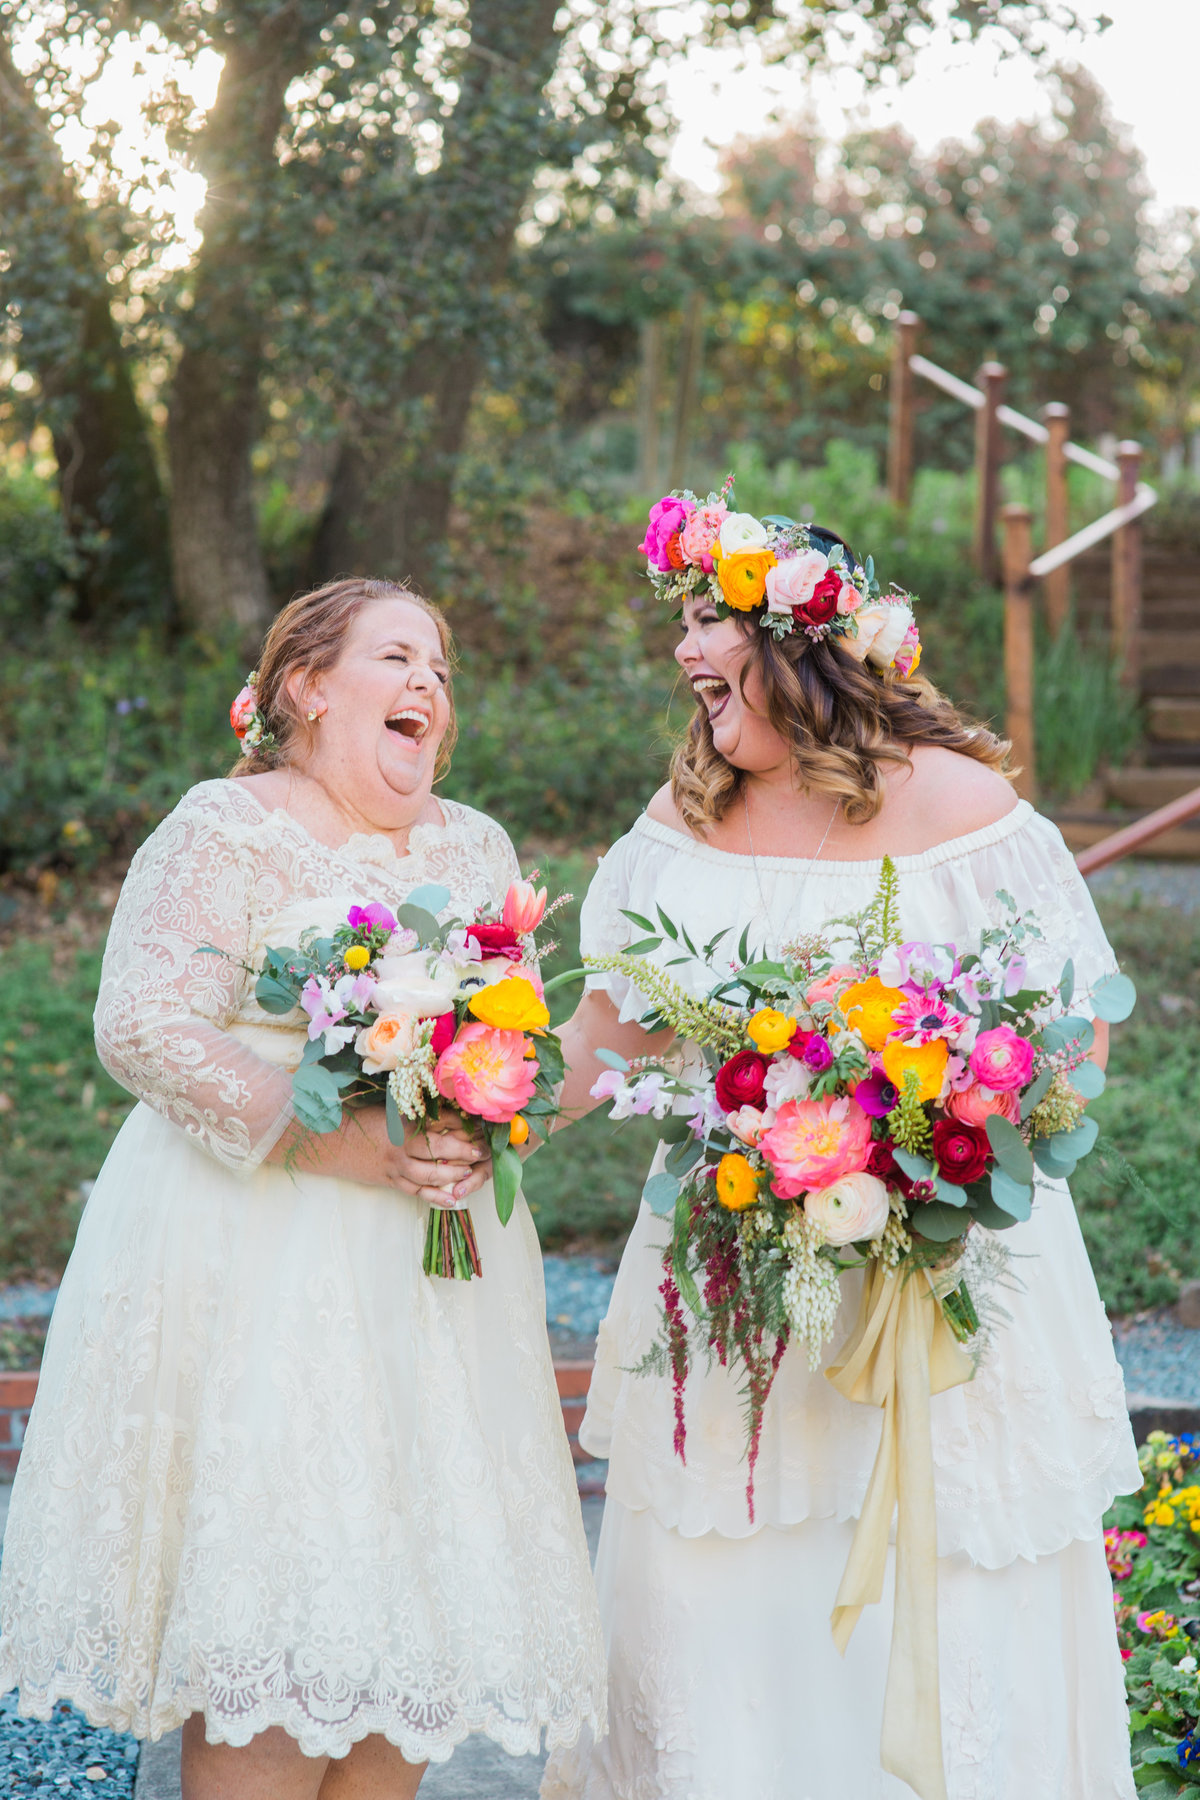 Bride and sister laughing Bride and groom joining cocktail hour at Madrona Manor in Healdsburg California.jpg